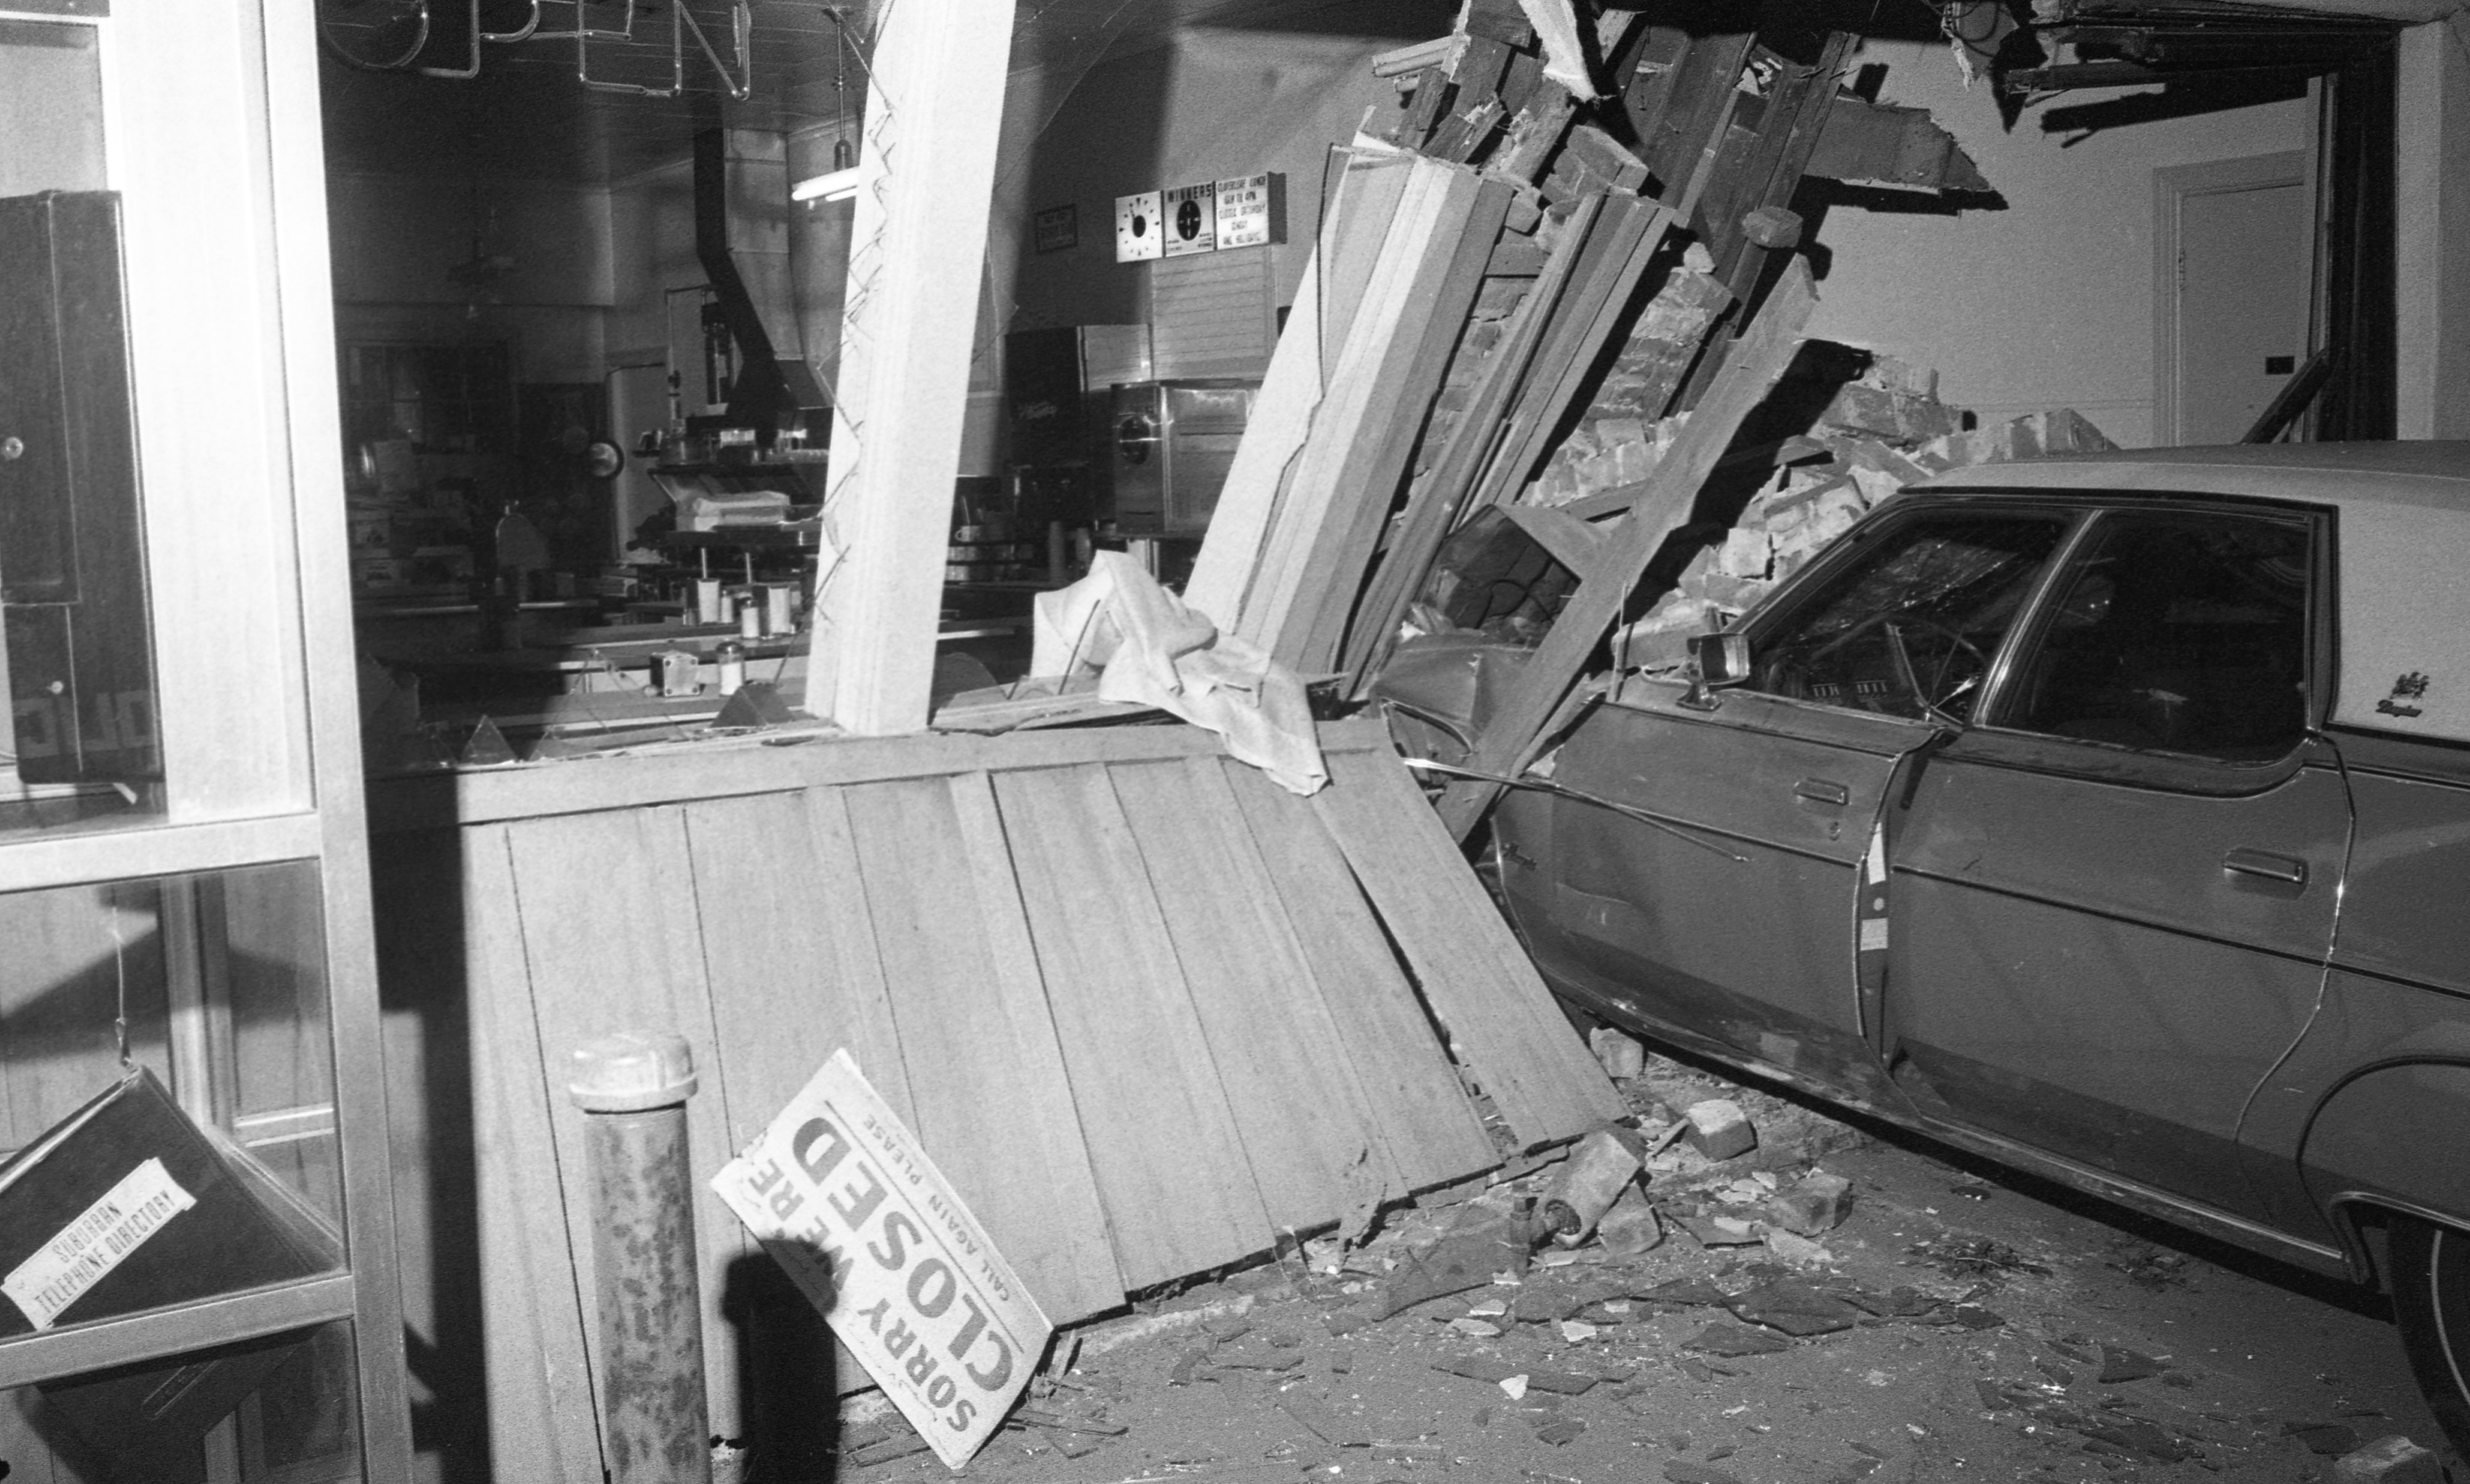 Car Crashed Into Cloverleaf Lunch Building, 1015 Broadway, October 1973 image